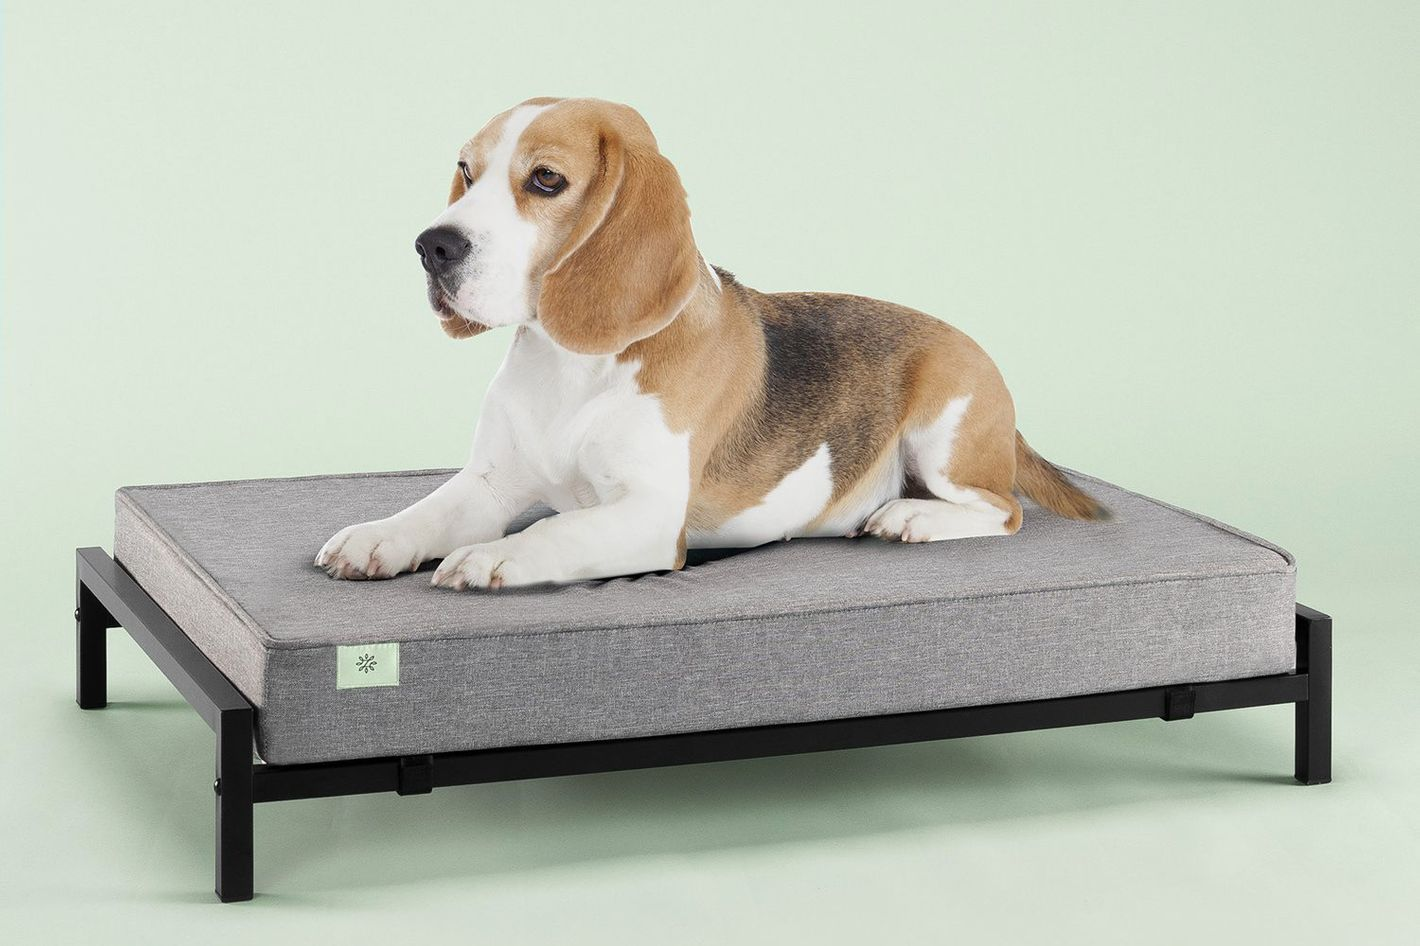 Zinus Elevated Pet Bed and 4-Inch Comfort Mattress Set (Medium)